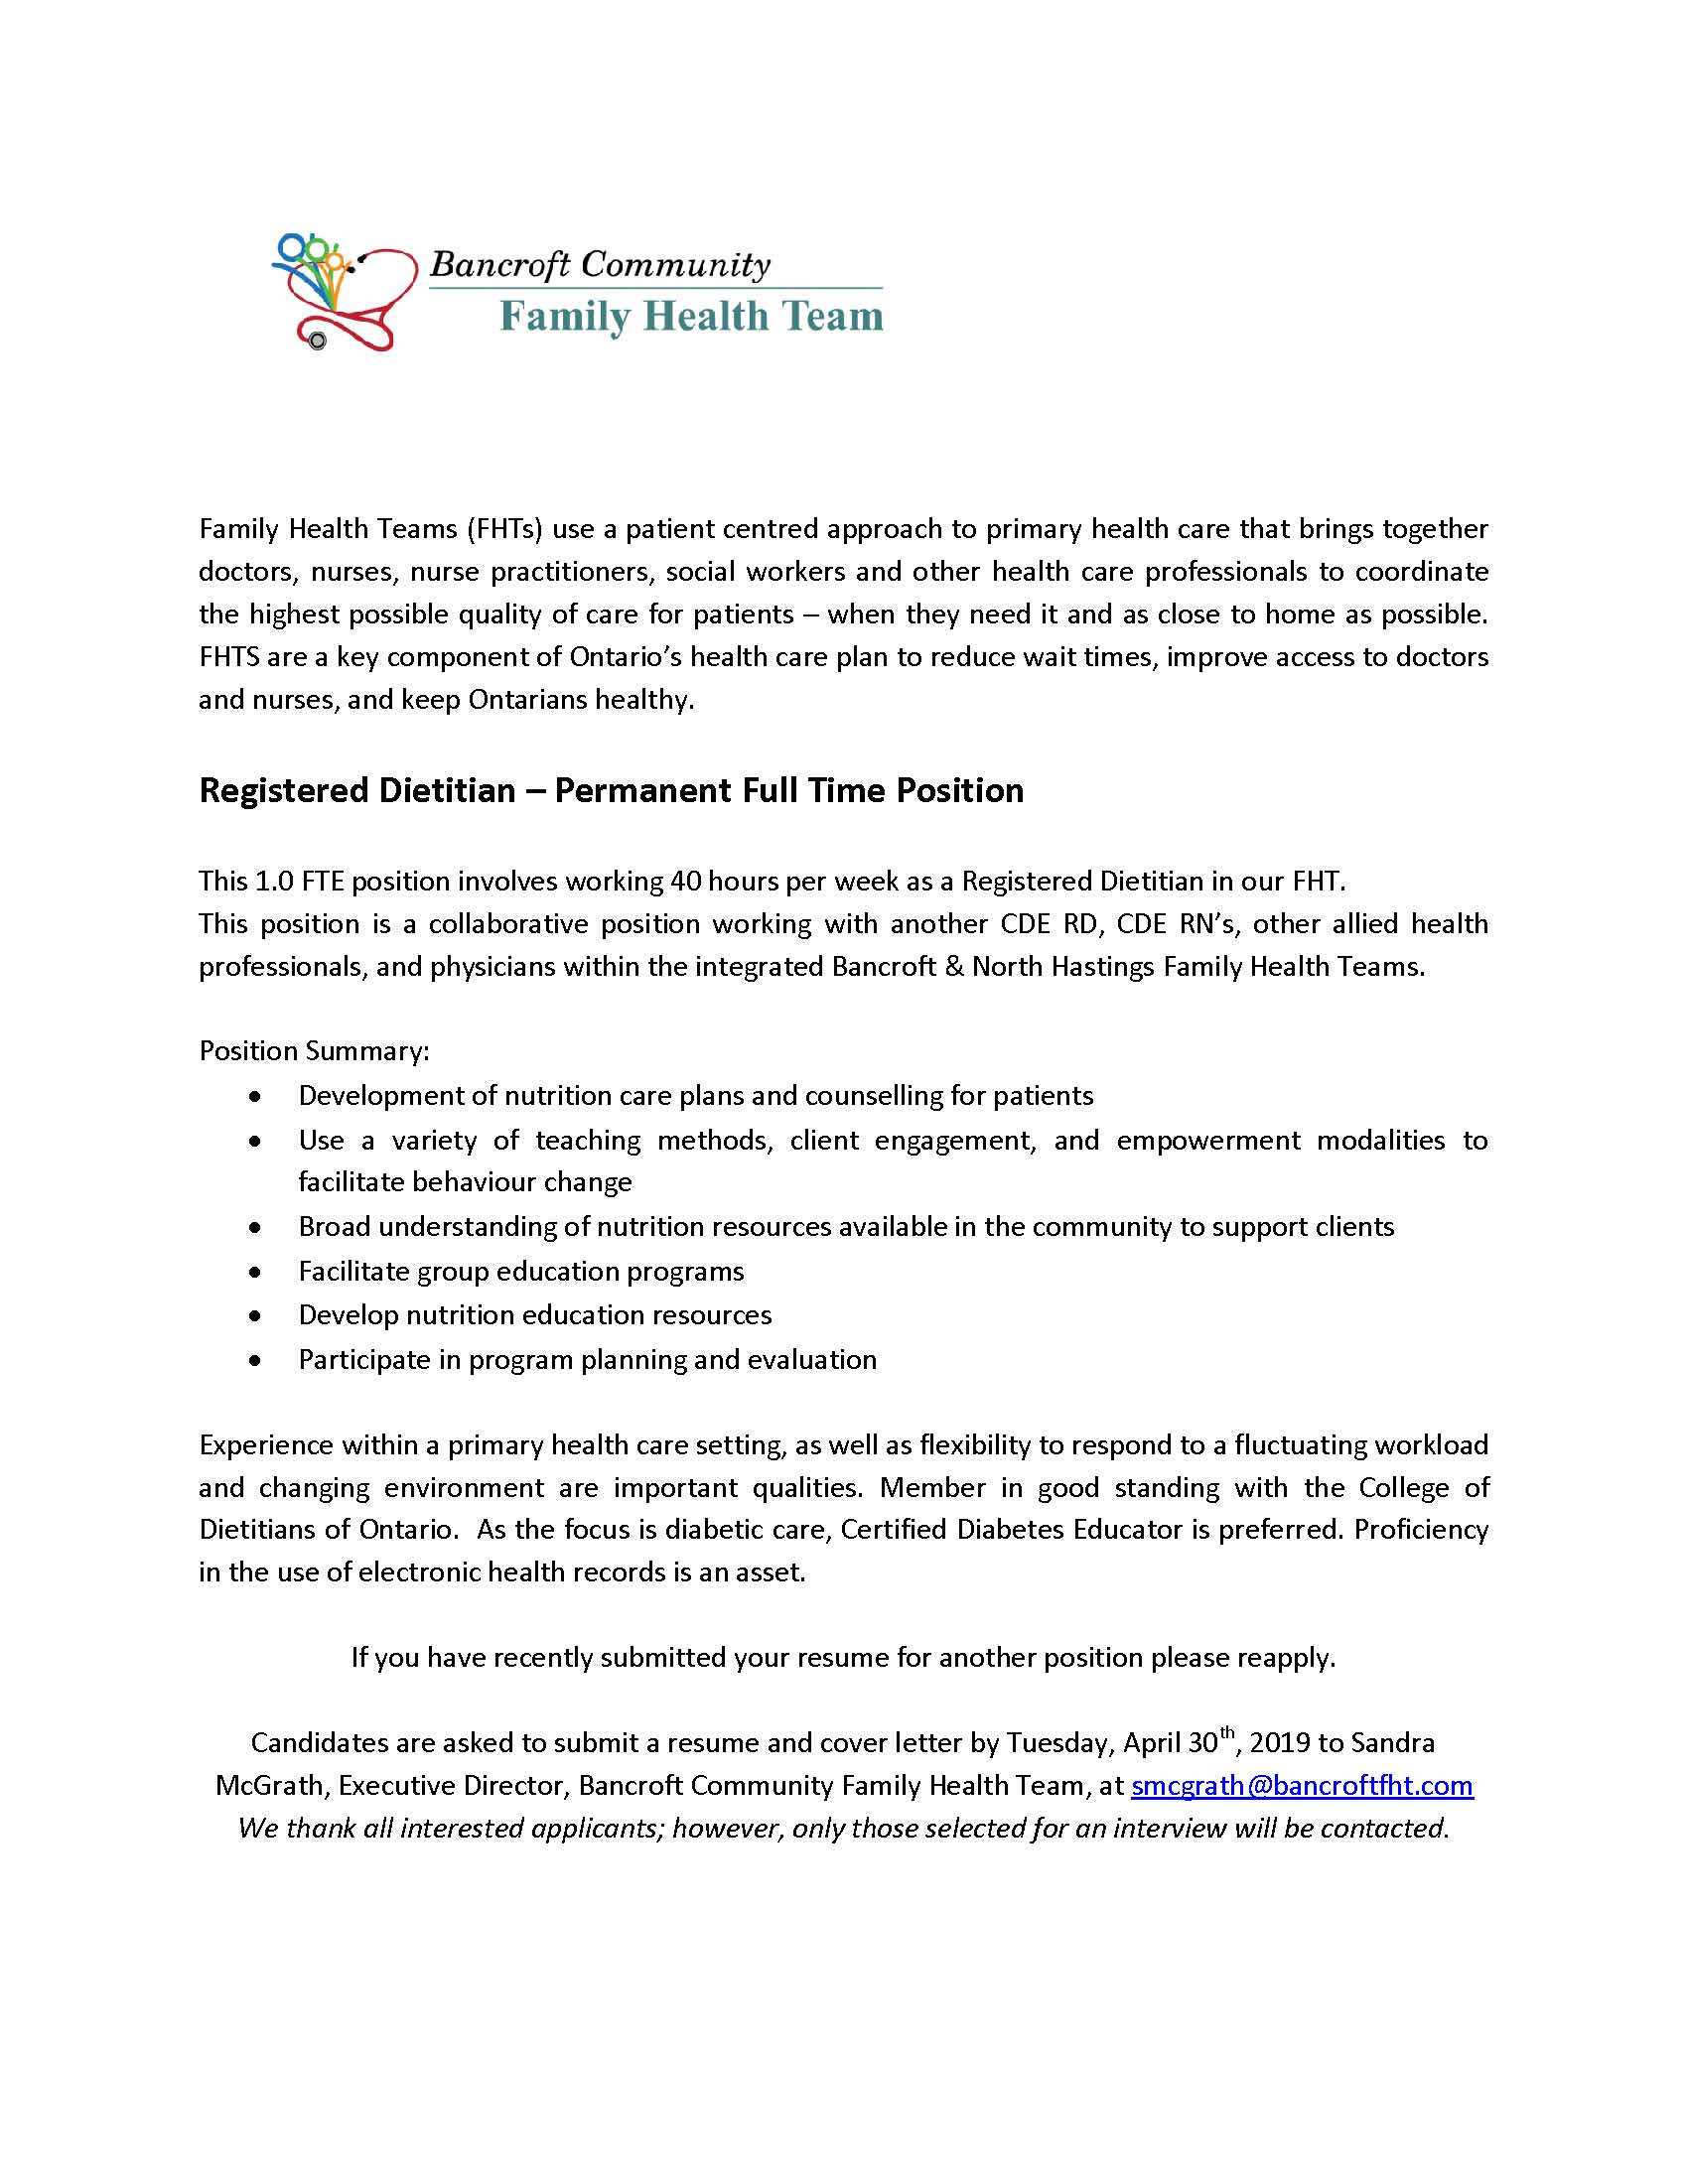 maternity leave ontario 2017 application online